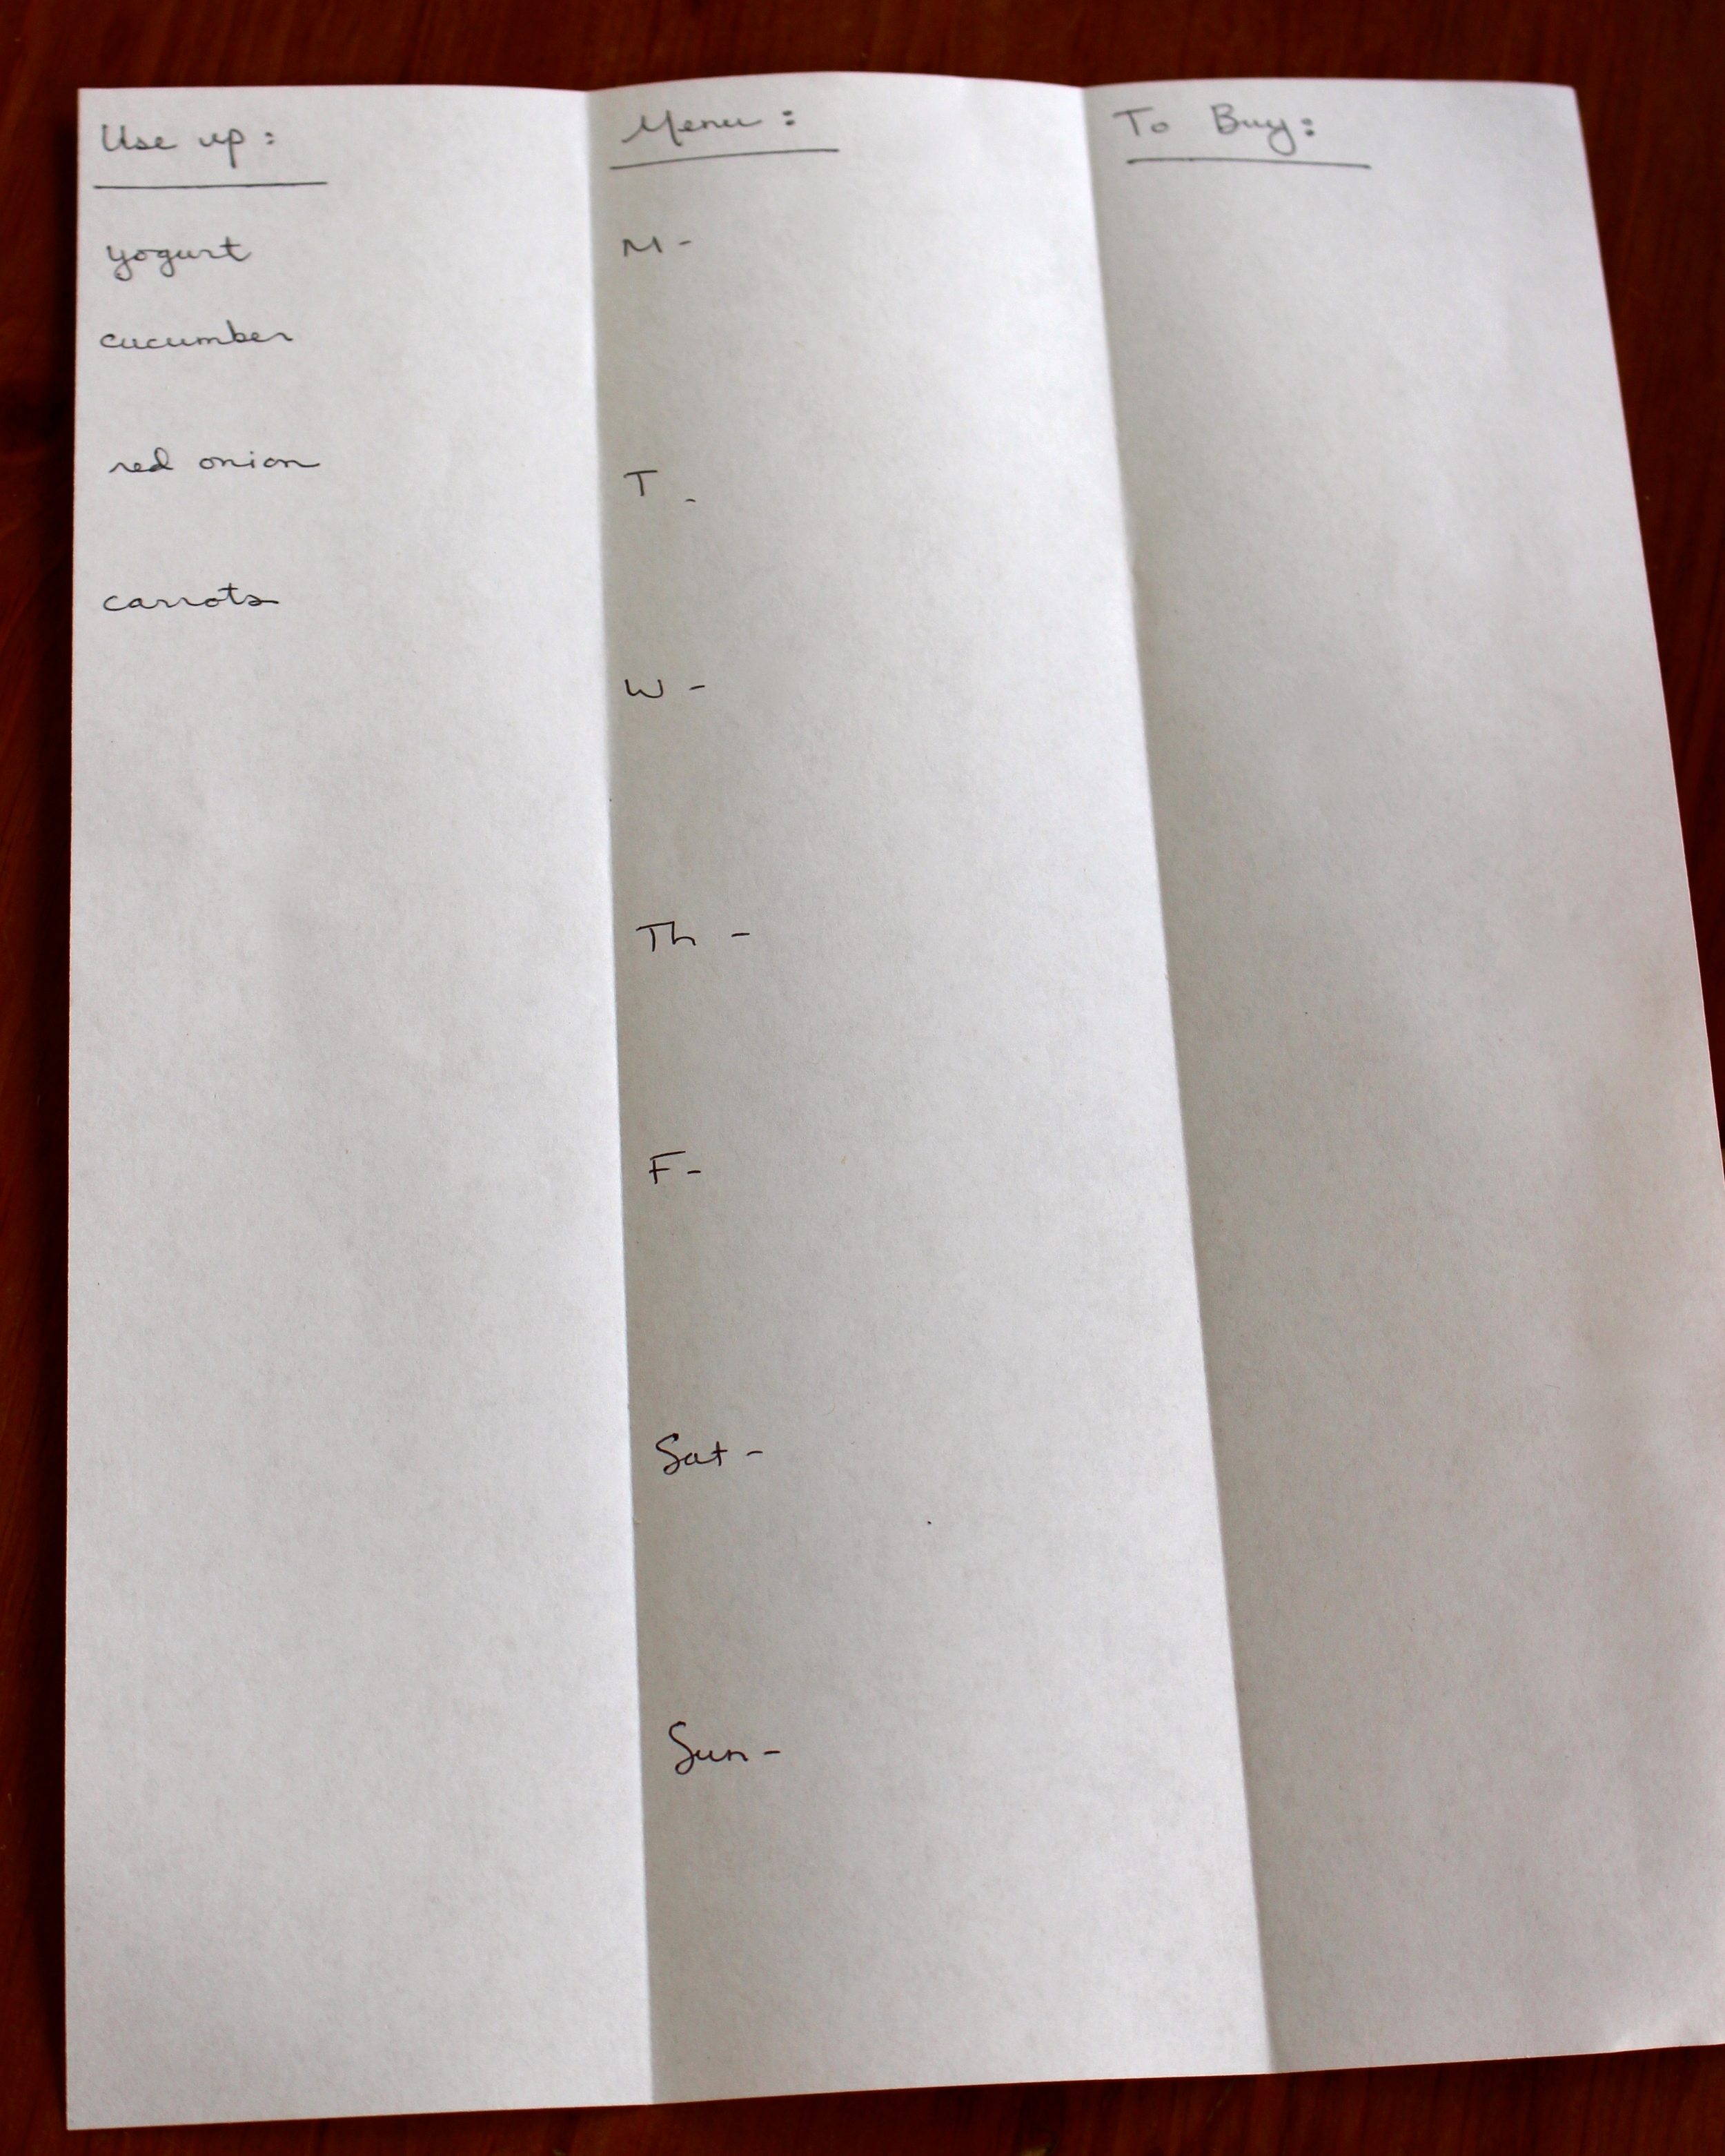 A vertical weekly menu page ready to be filled in